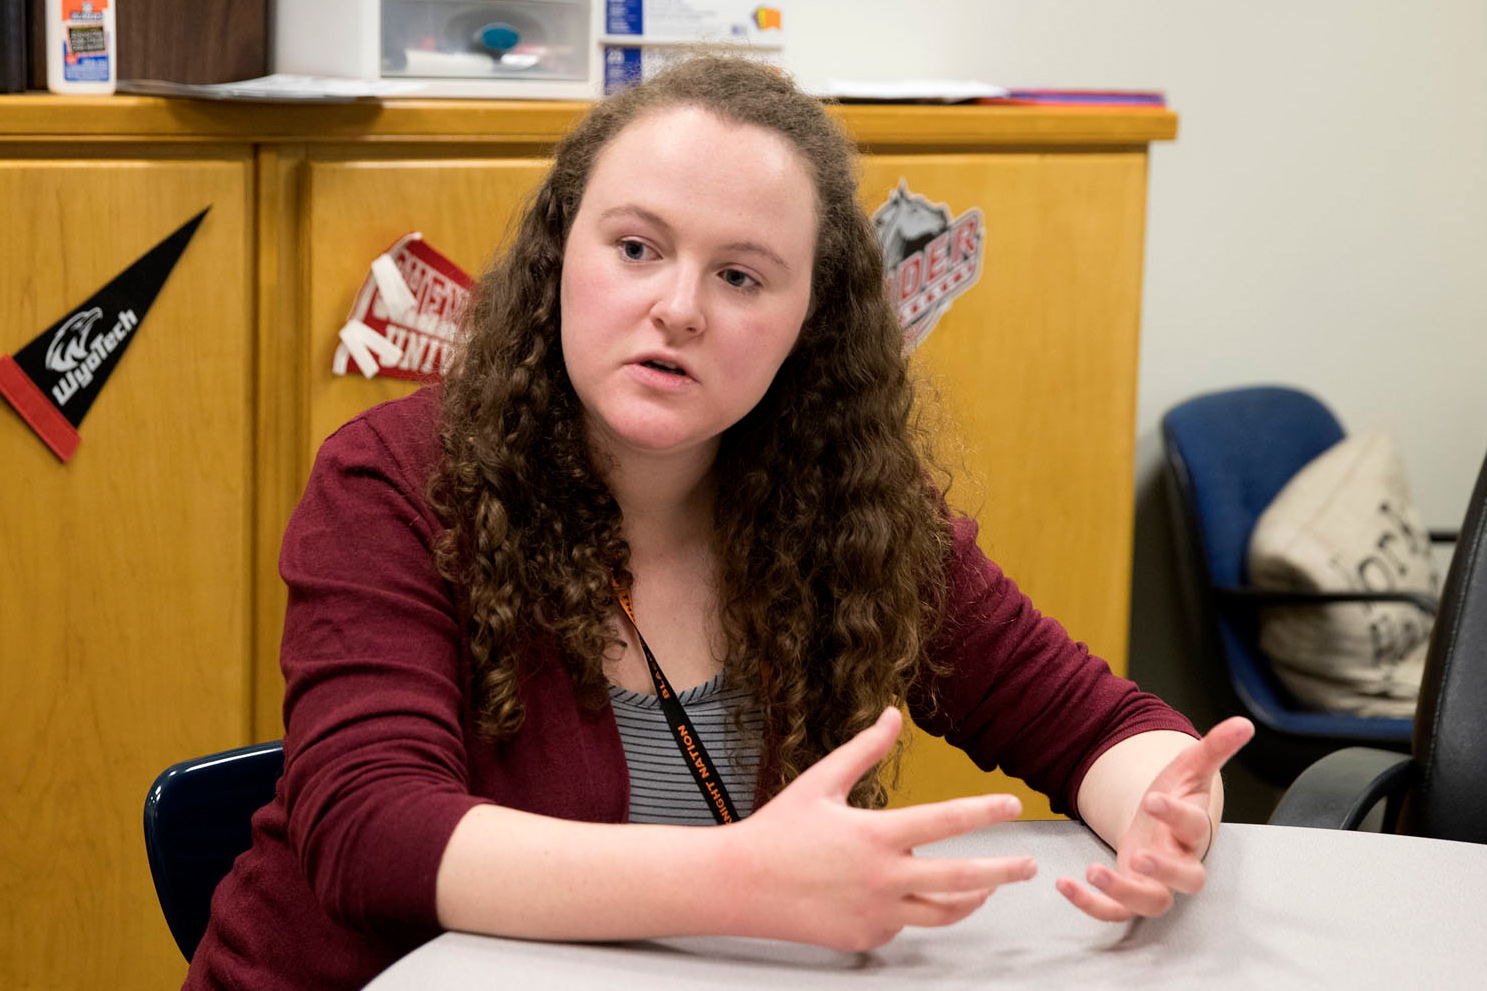 Laura Widener is Charlottesville High School's VCAC adviser and a 2016 graduate of the College of Arts & Sciences.